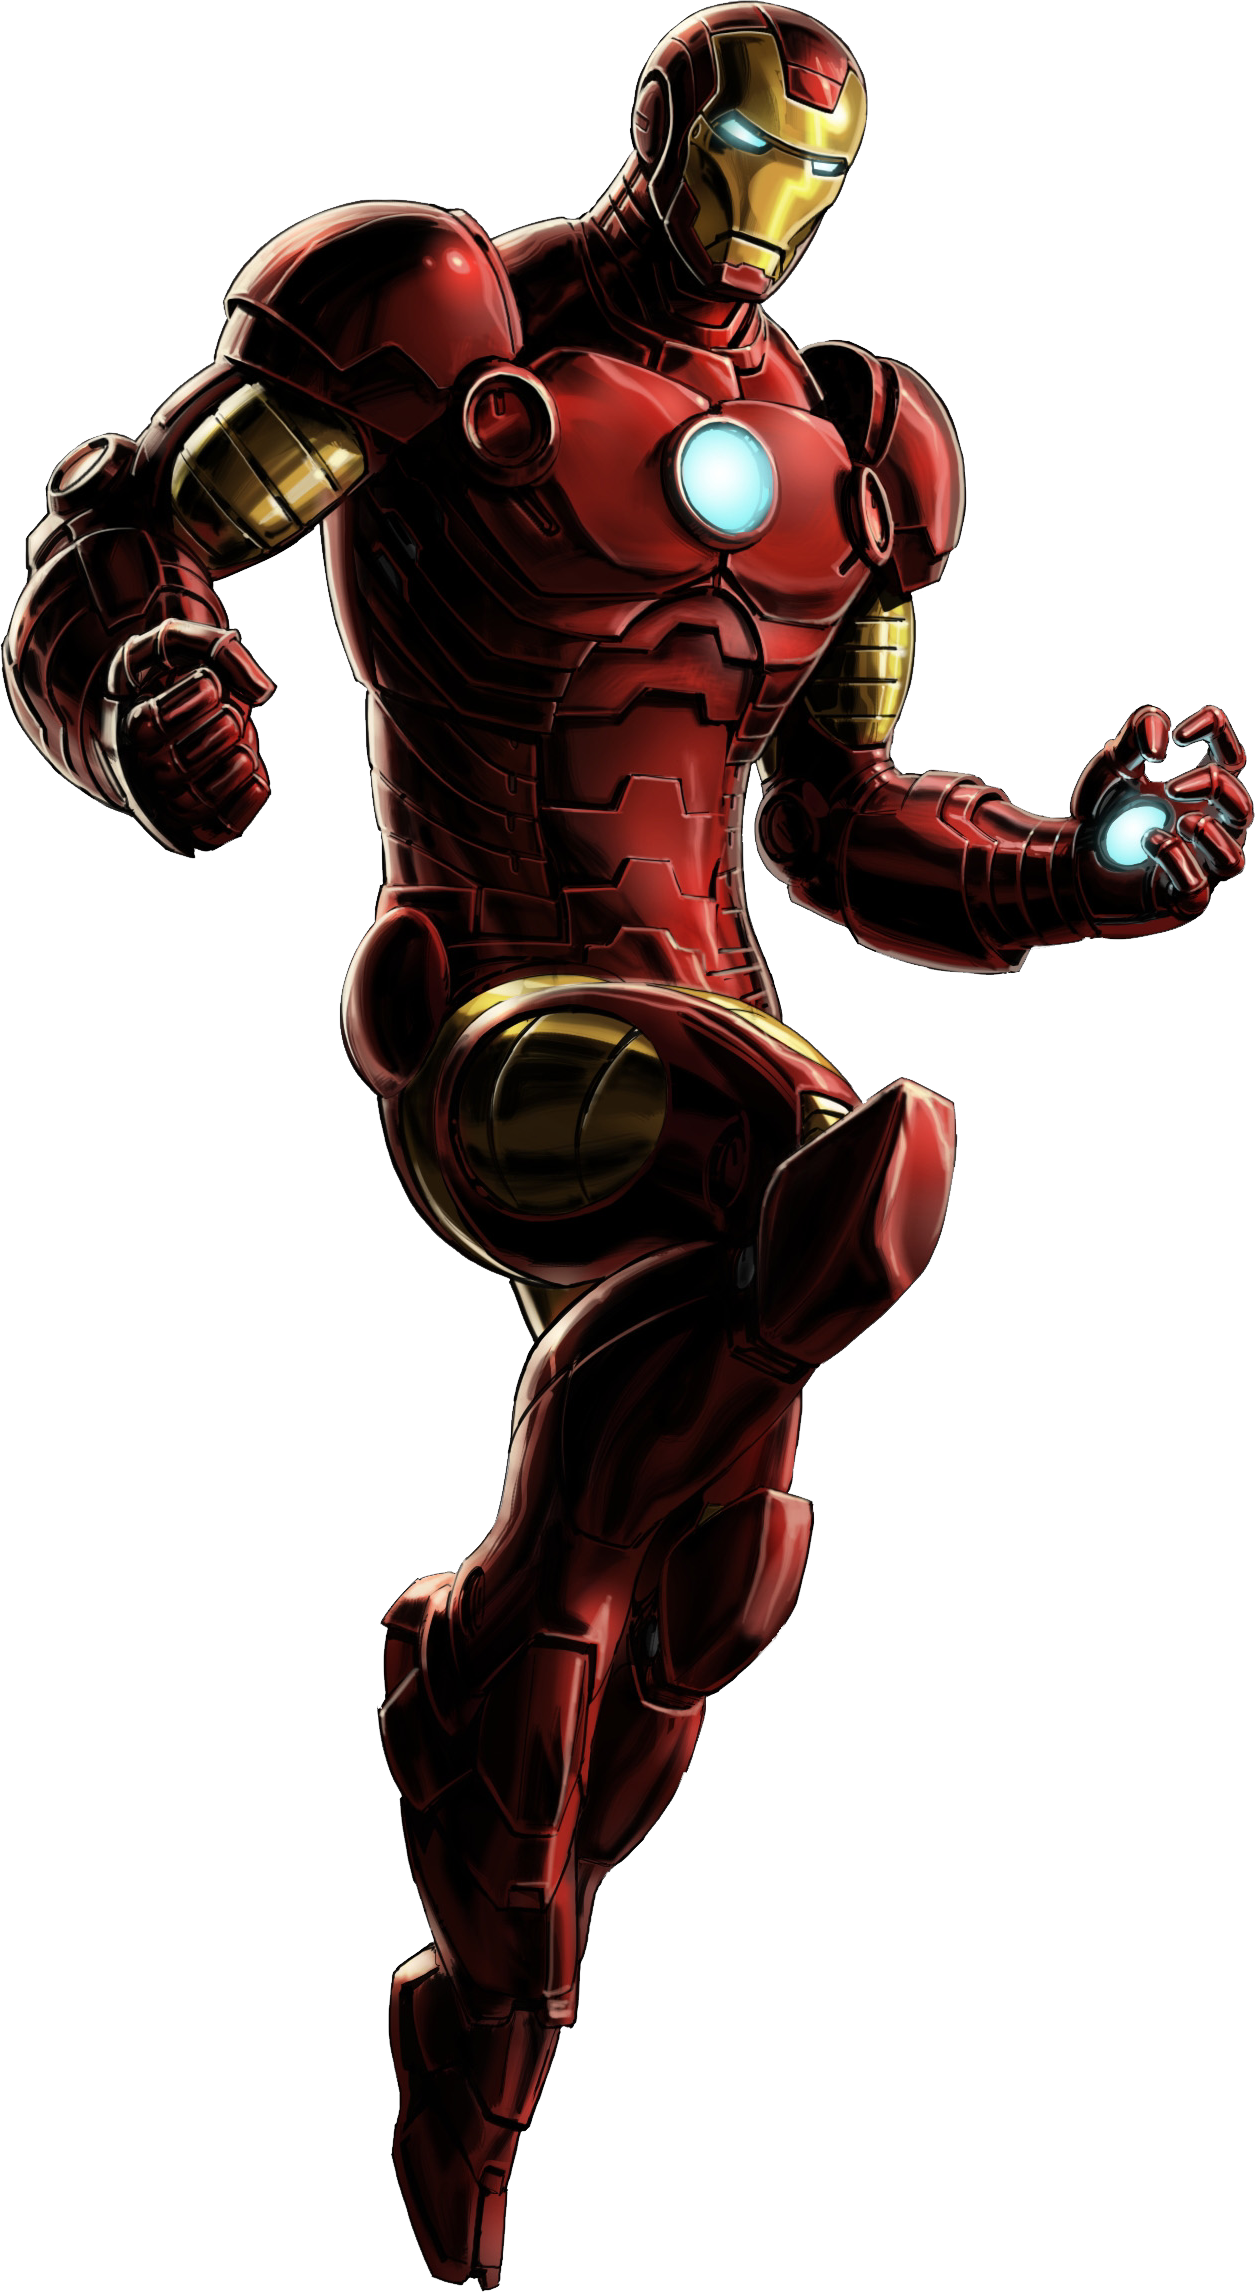 ironman free red costume images download #8726